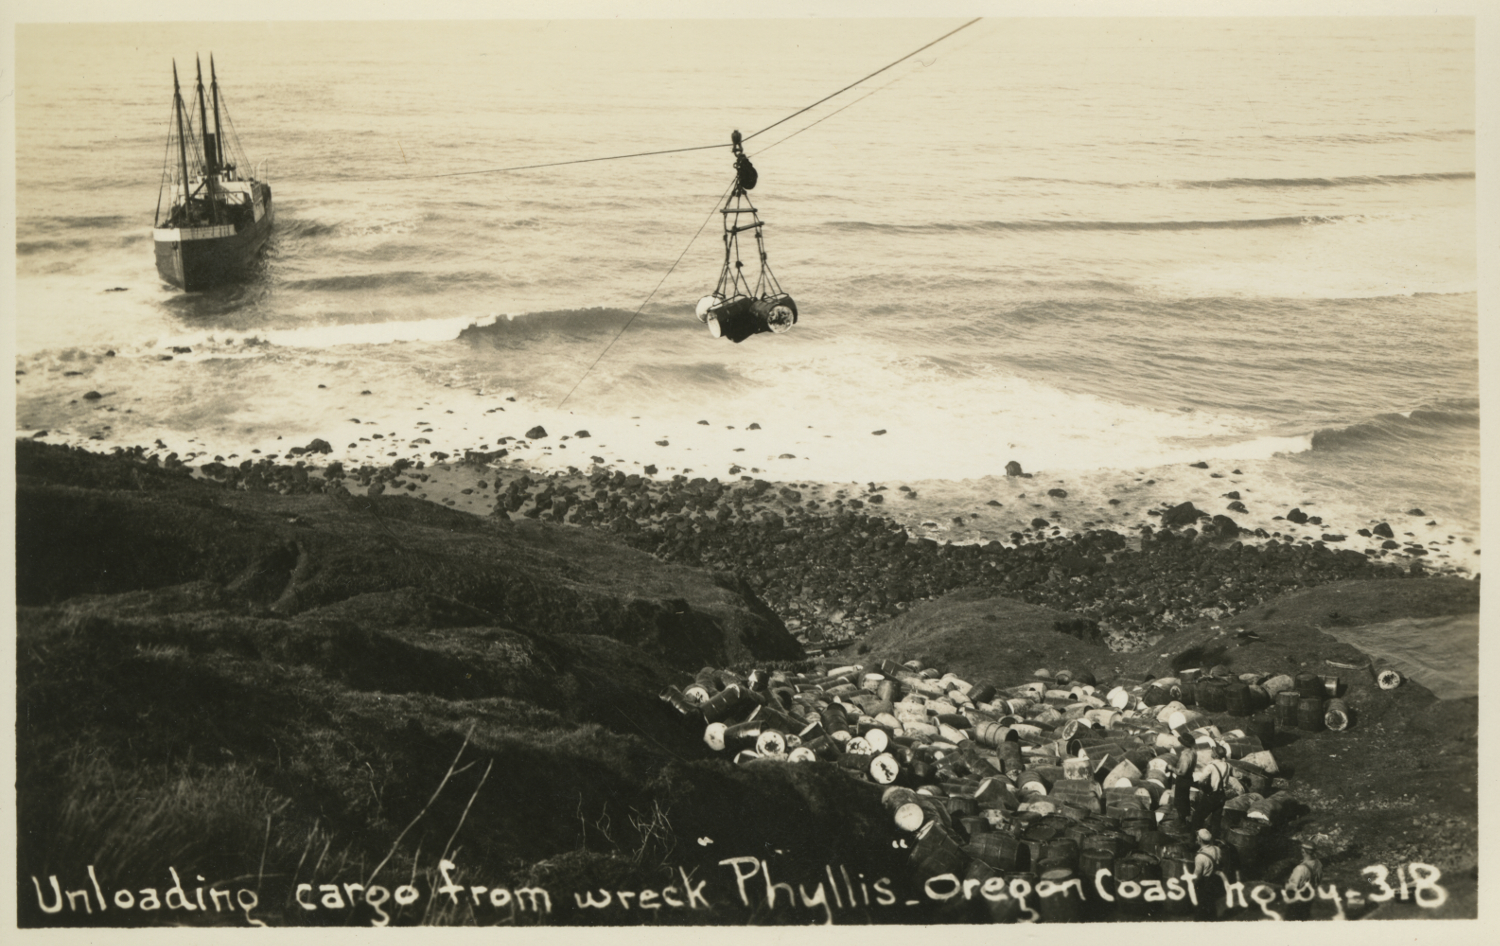 Unloading cargo from wreck Phyllis - Oregon Coast Highway